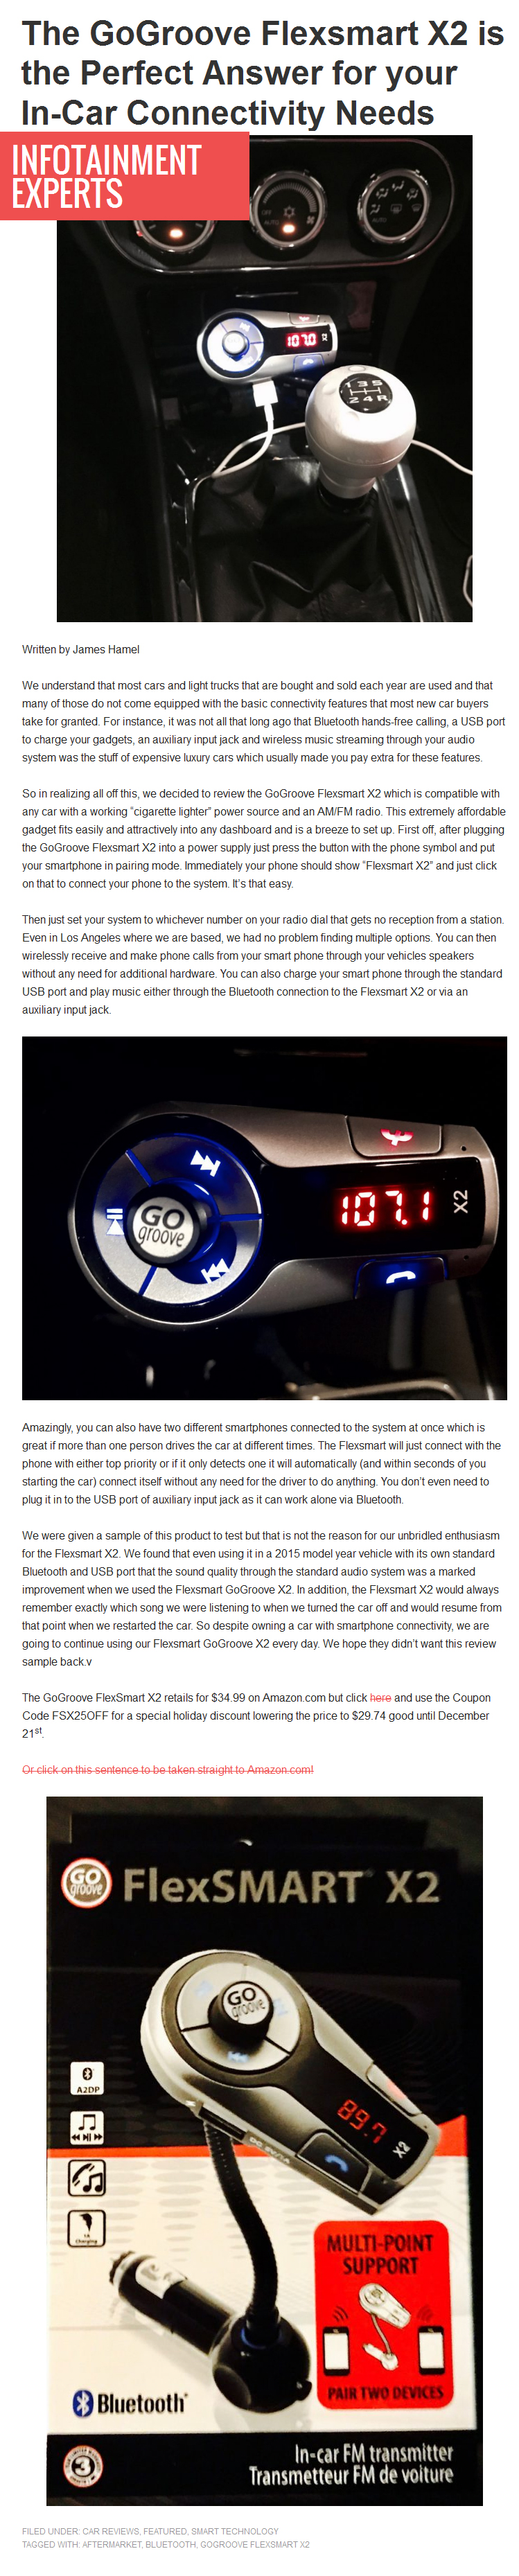 The GoGroove Flexsmart X2 is the Perfect Answer for your In-Car Connectivity Needs